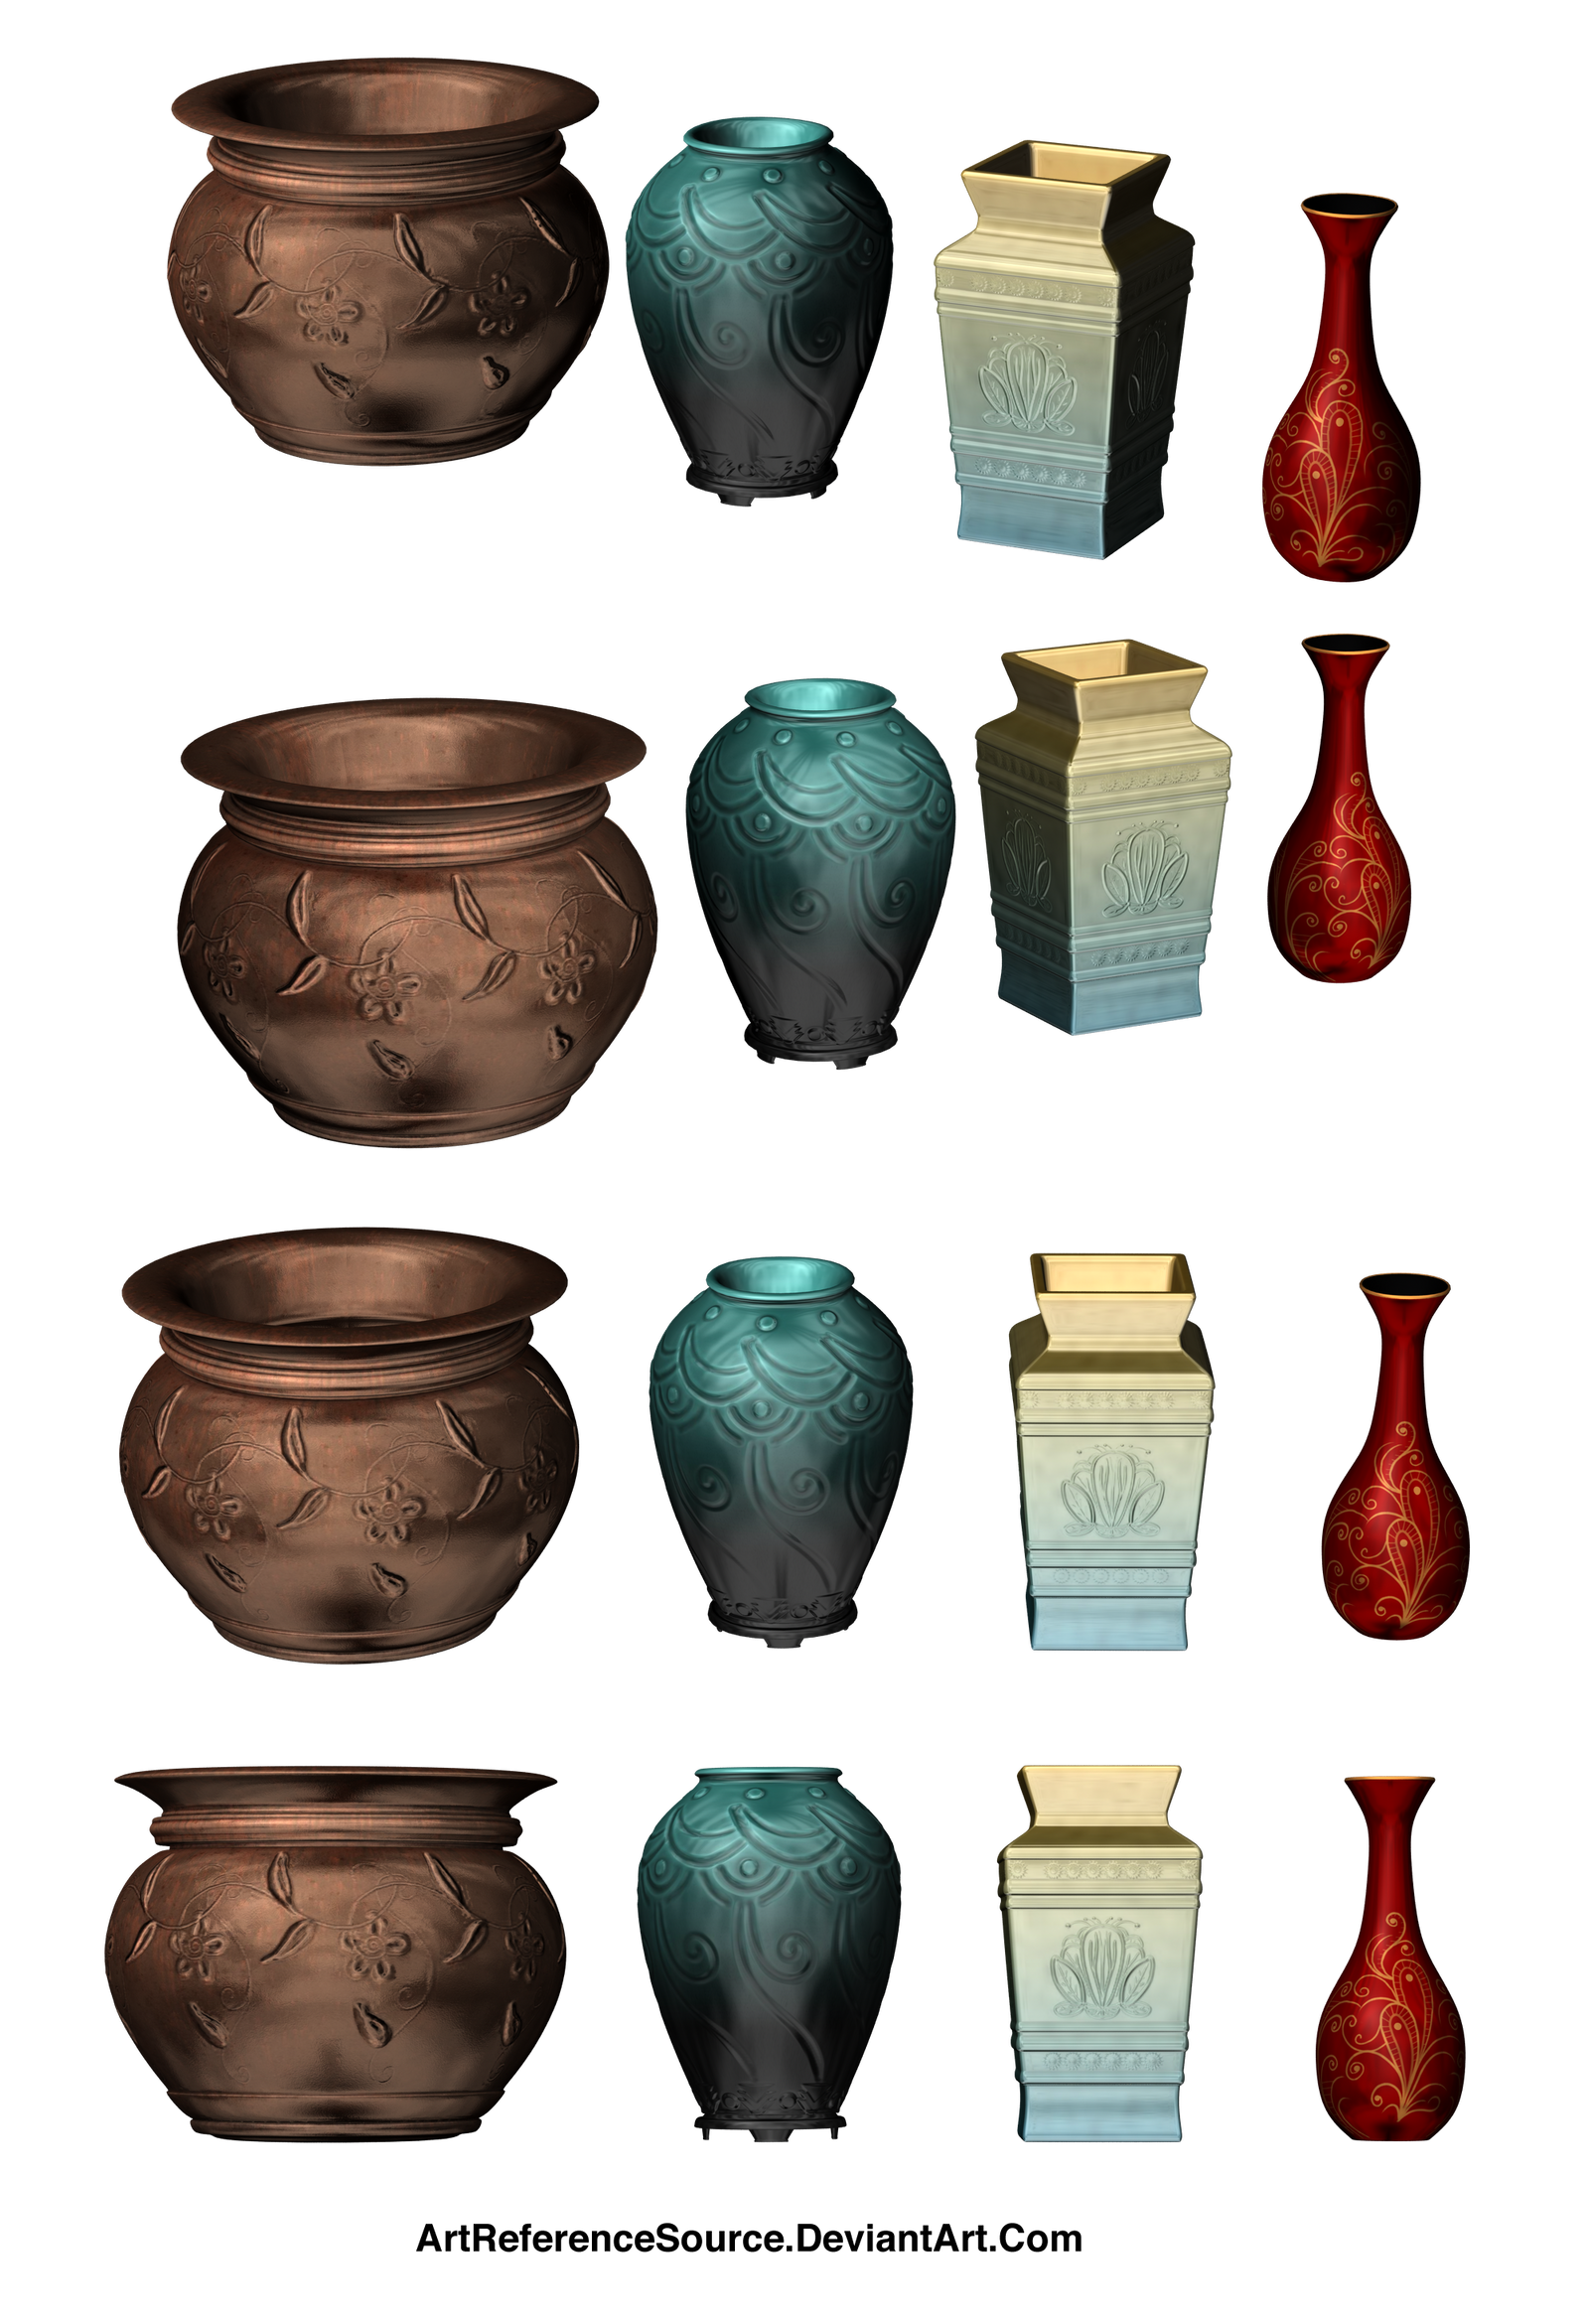 Wooden barrels 1 png by fumar porros on deviantart -  Artreferencesource Free Stock Png Colorful Vases And Bowls By Artreferencesource